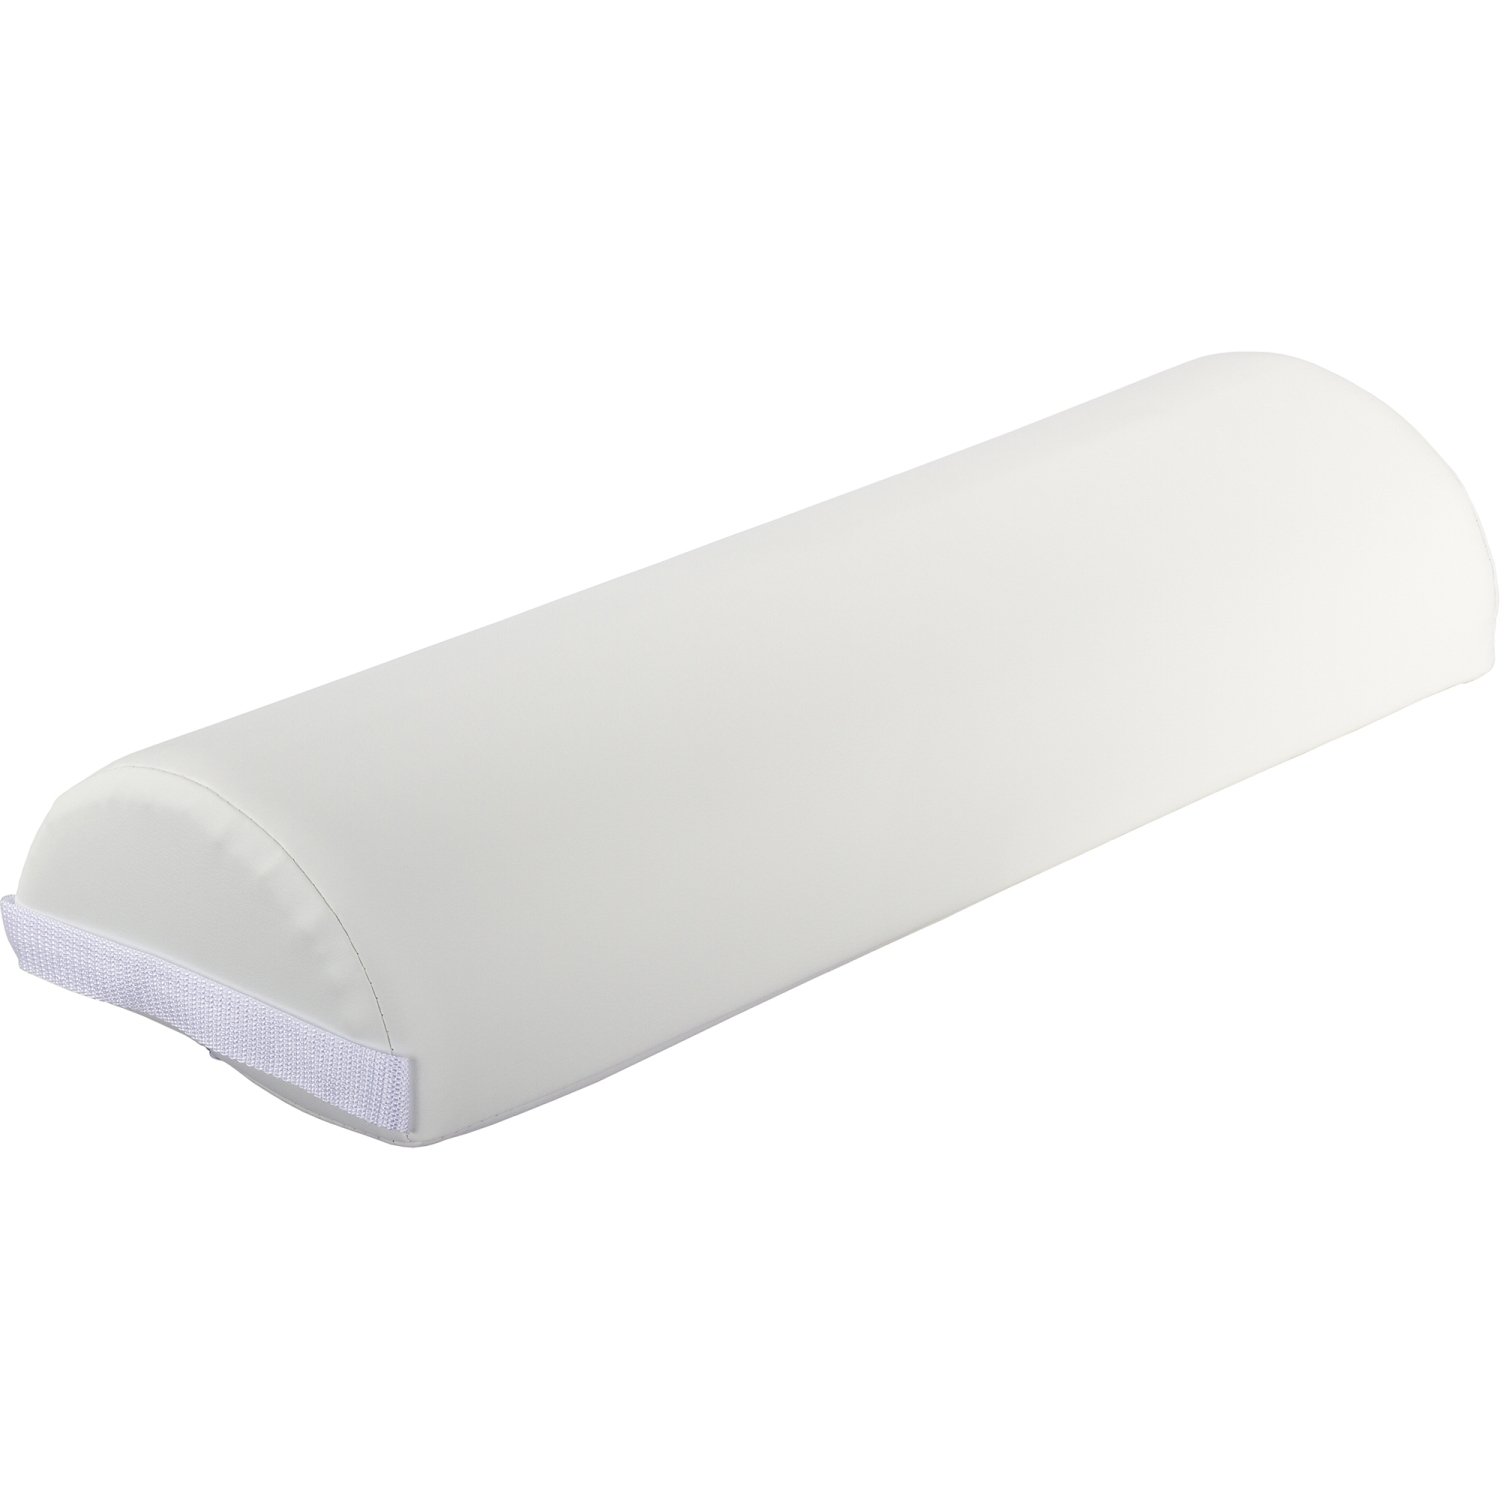 Cervicale Cuscino Adatto Movit Xxl Cuscino Per Il Collo Bianco 69x23x11 Cuscino